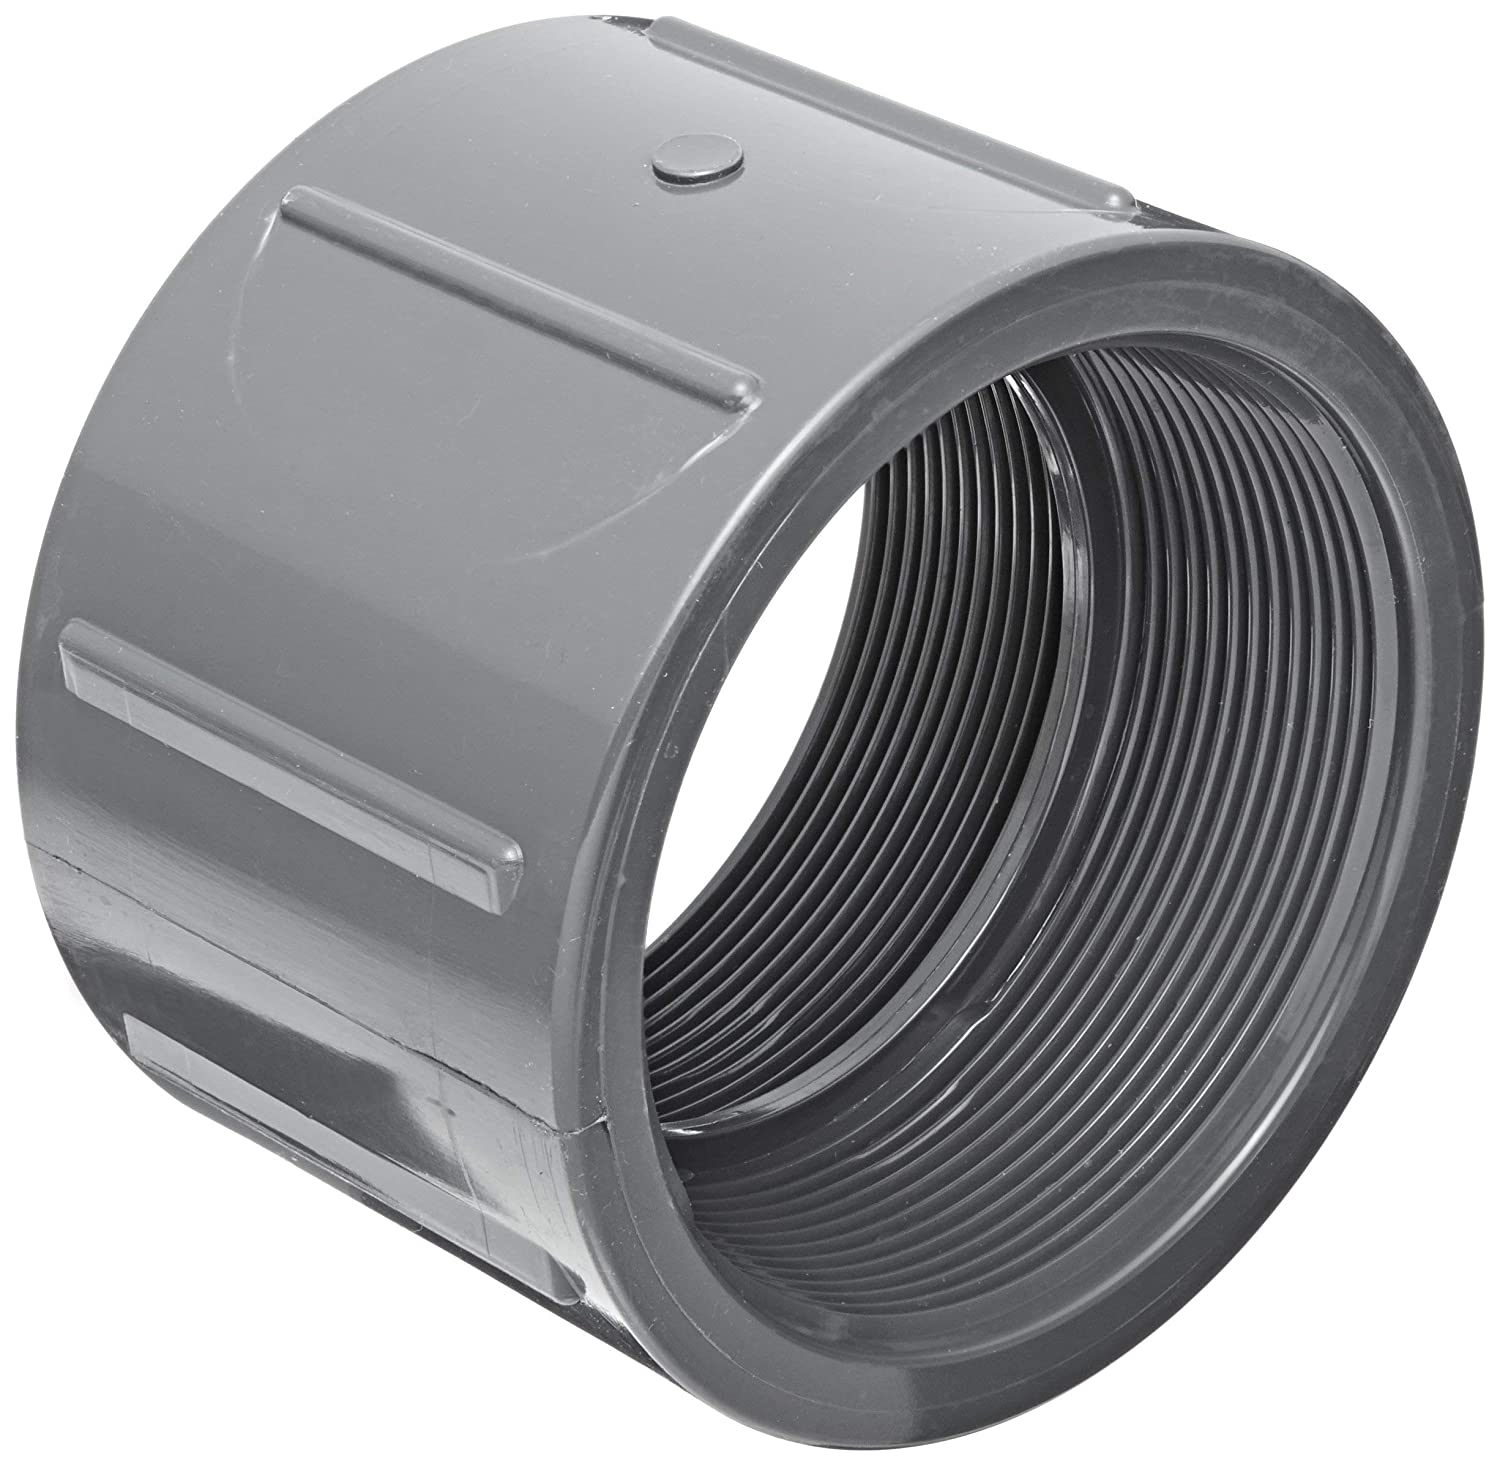 Spears Max 51% OFF 830 Series PVC Pipe 80 Two Popular standard Coupling Fitting Schedule